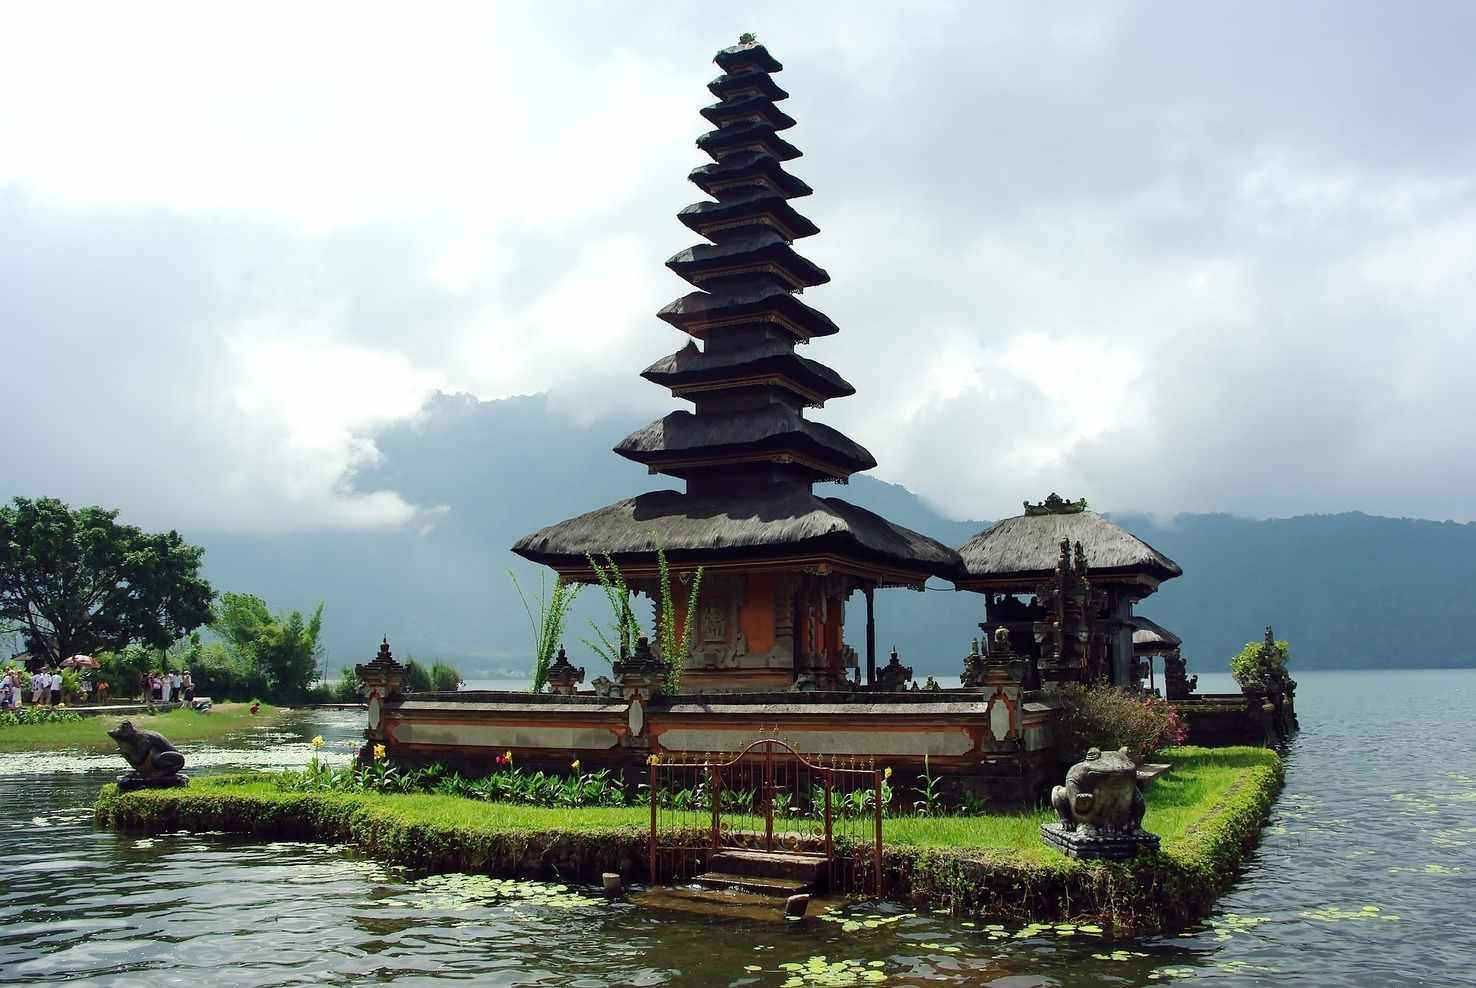 Bali Tour Package Bali (5 Nights/6 Days)